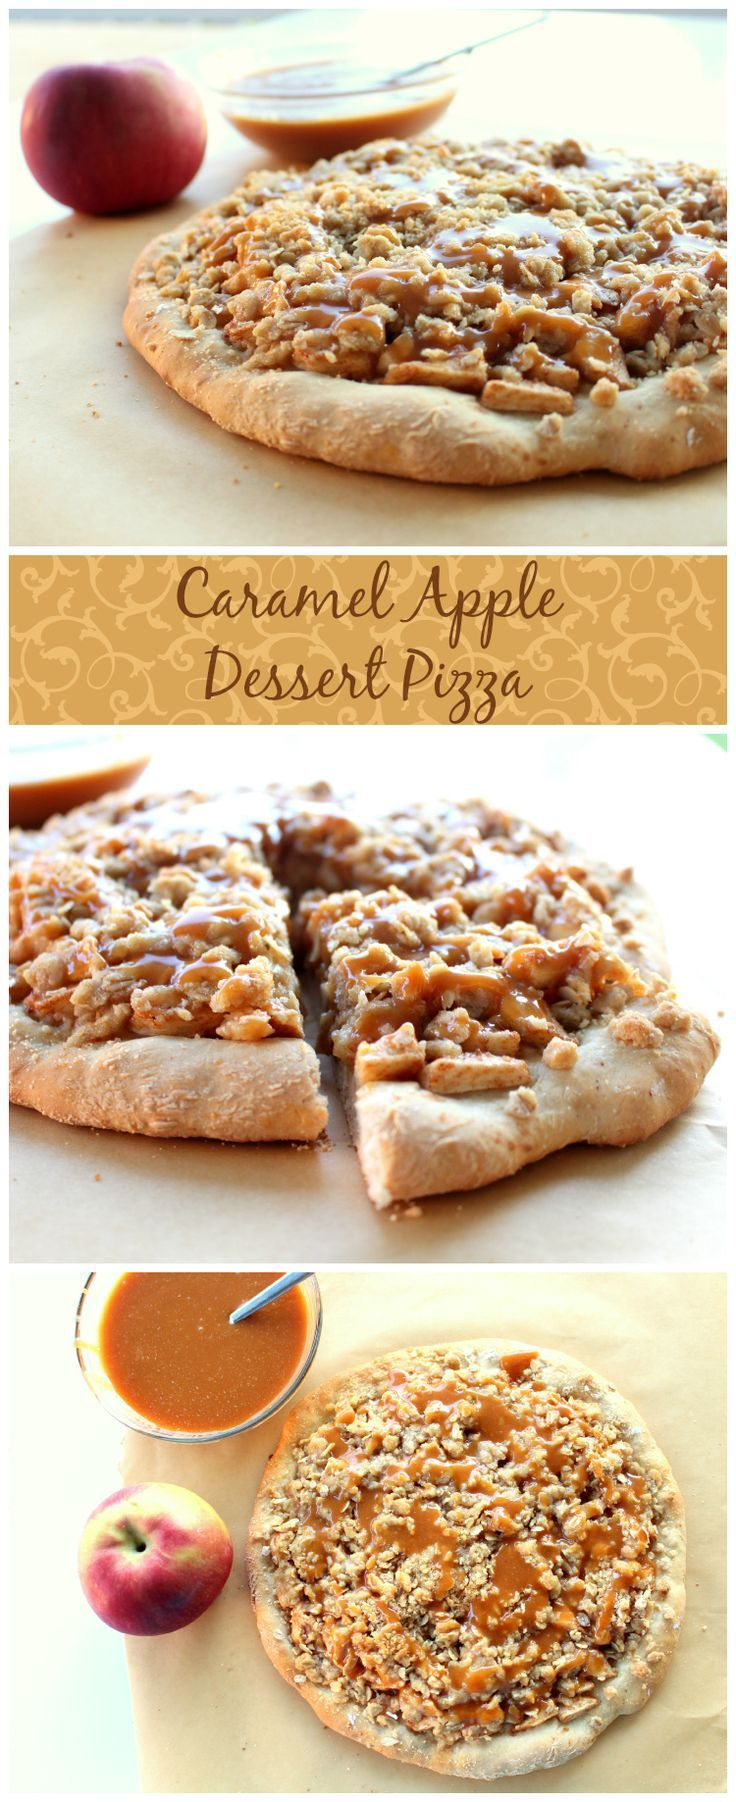 Caramel Apple Dessert Pizza | Gooey Apples, Brown Sugar Streusel and Caramel Drizzle make this the best dessert pizza ever.